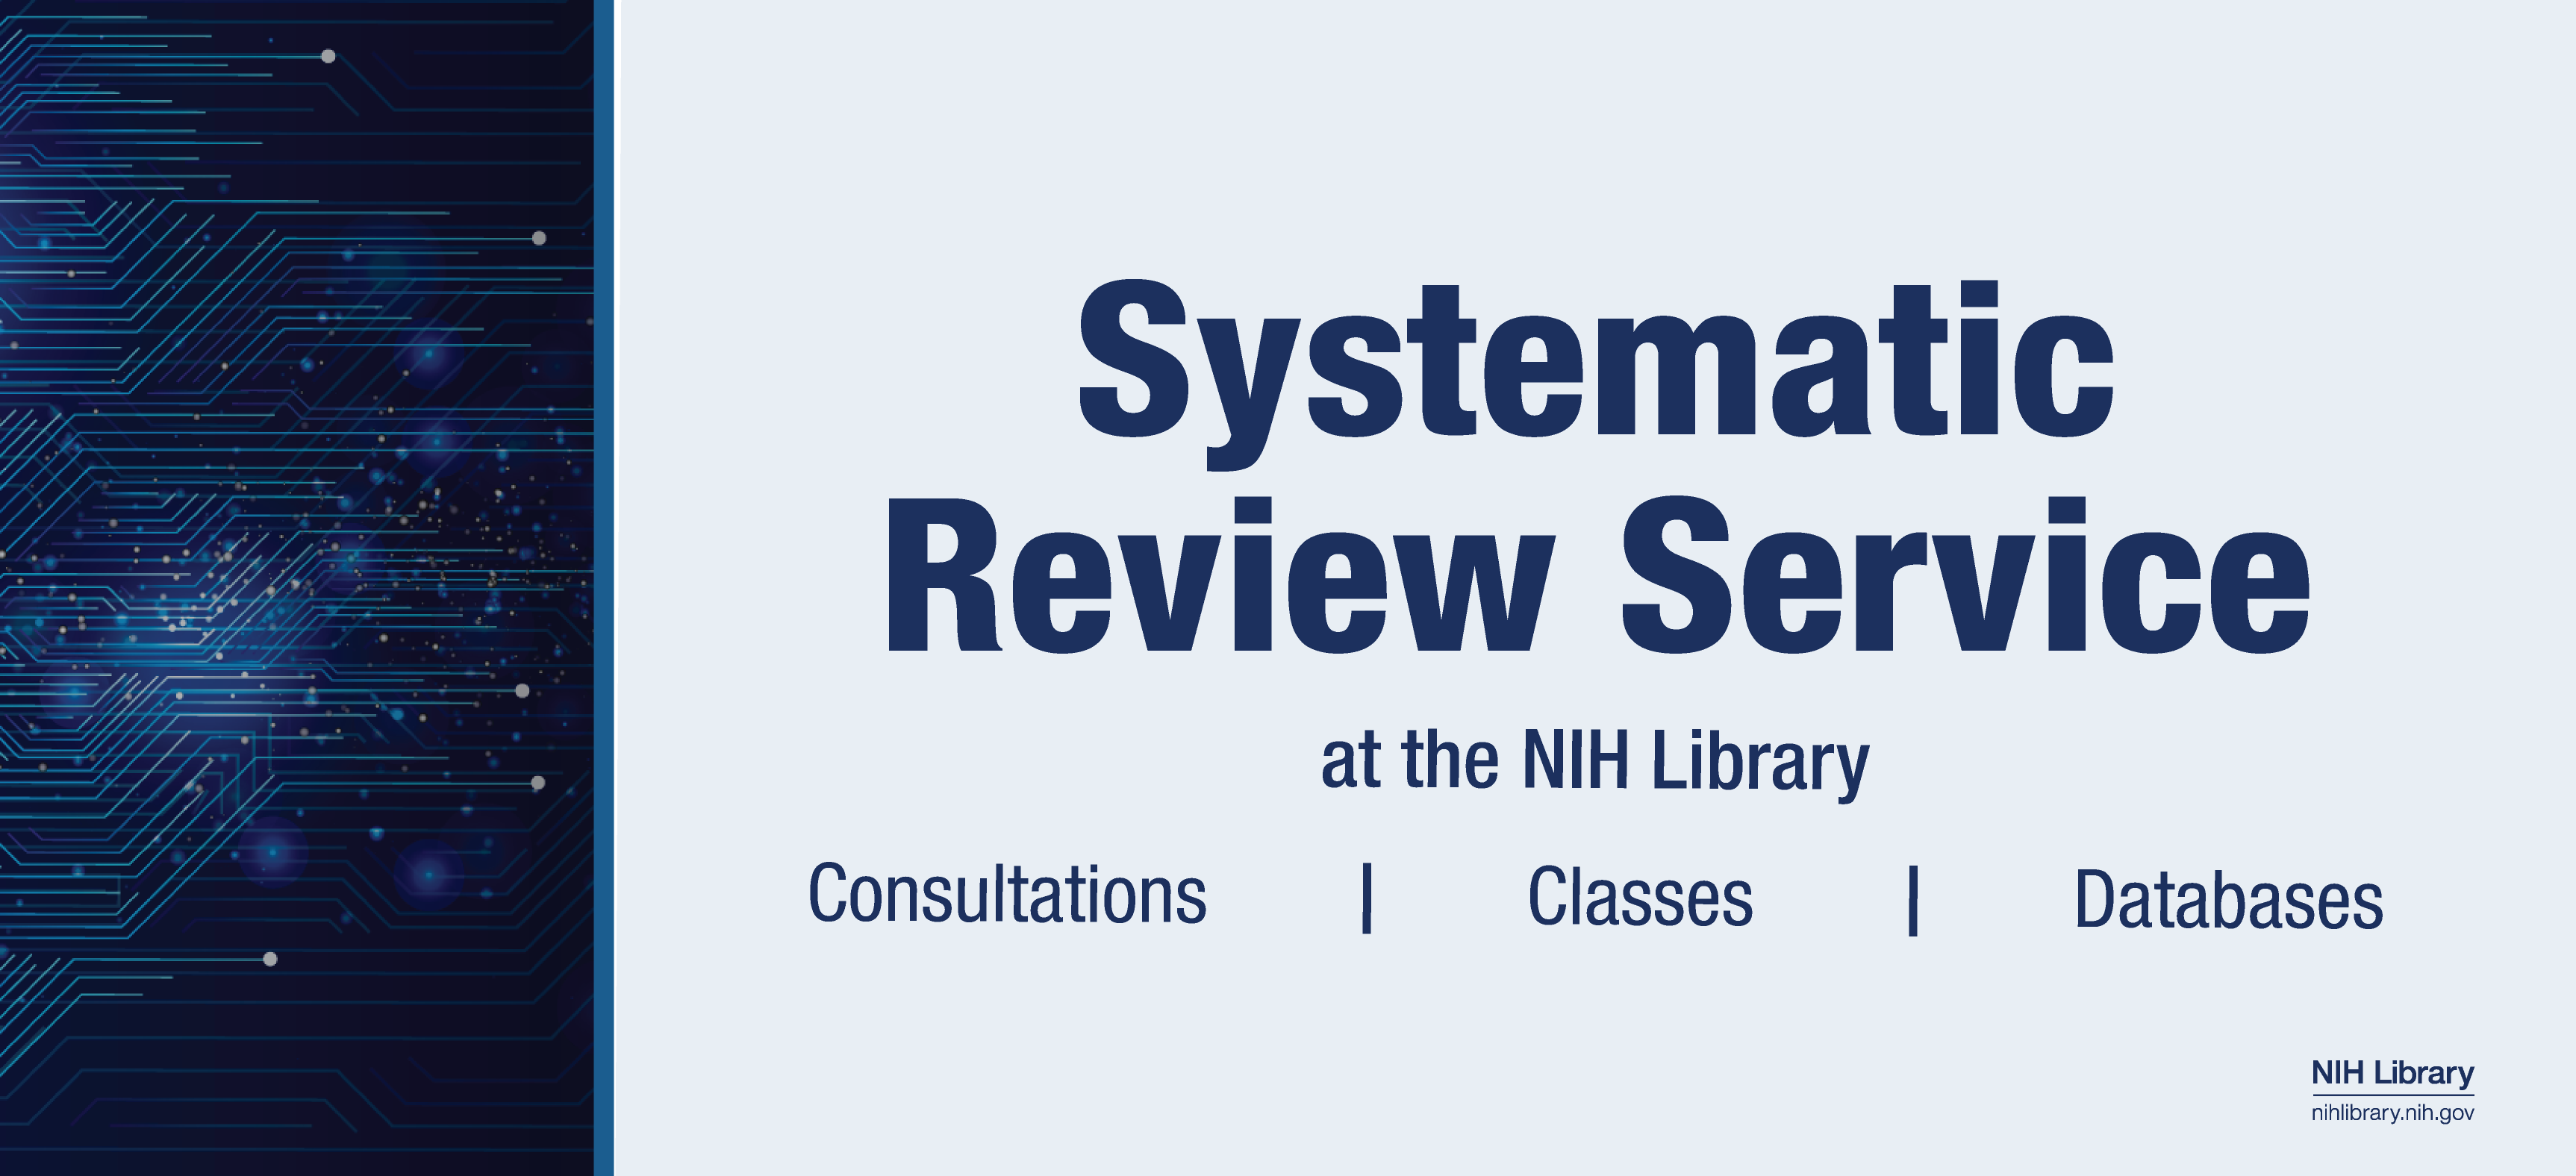 Systematic Review Services at the NIH Library